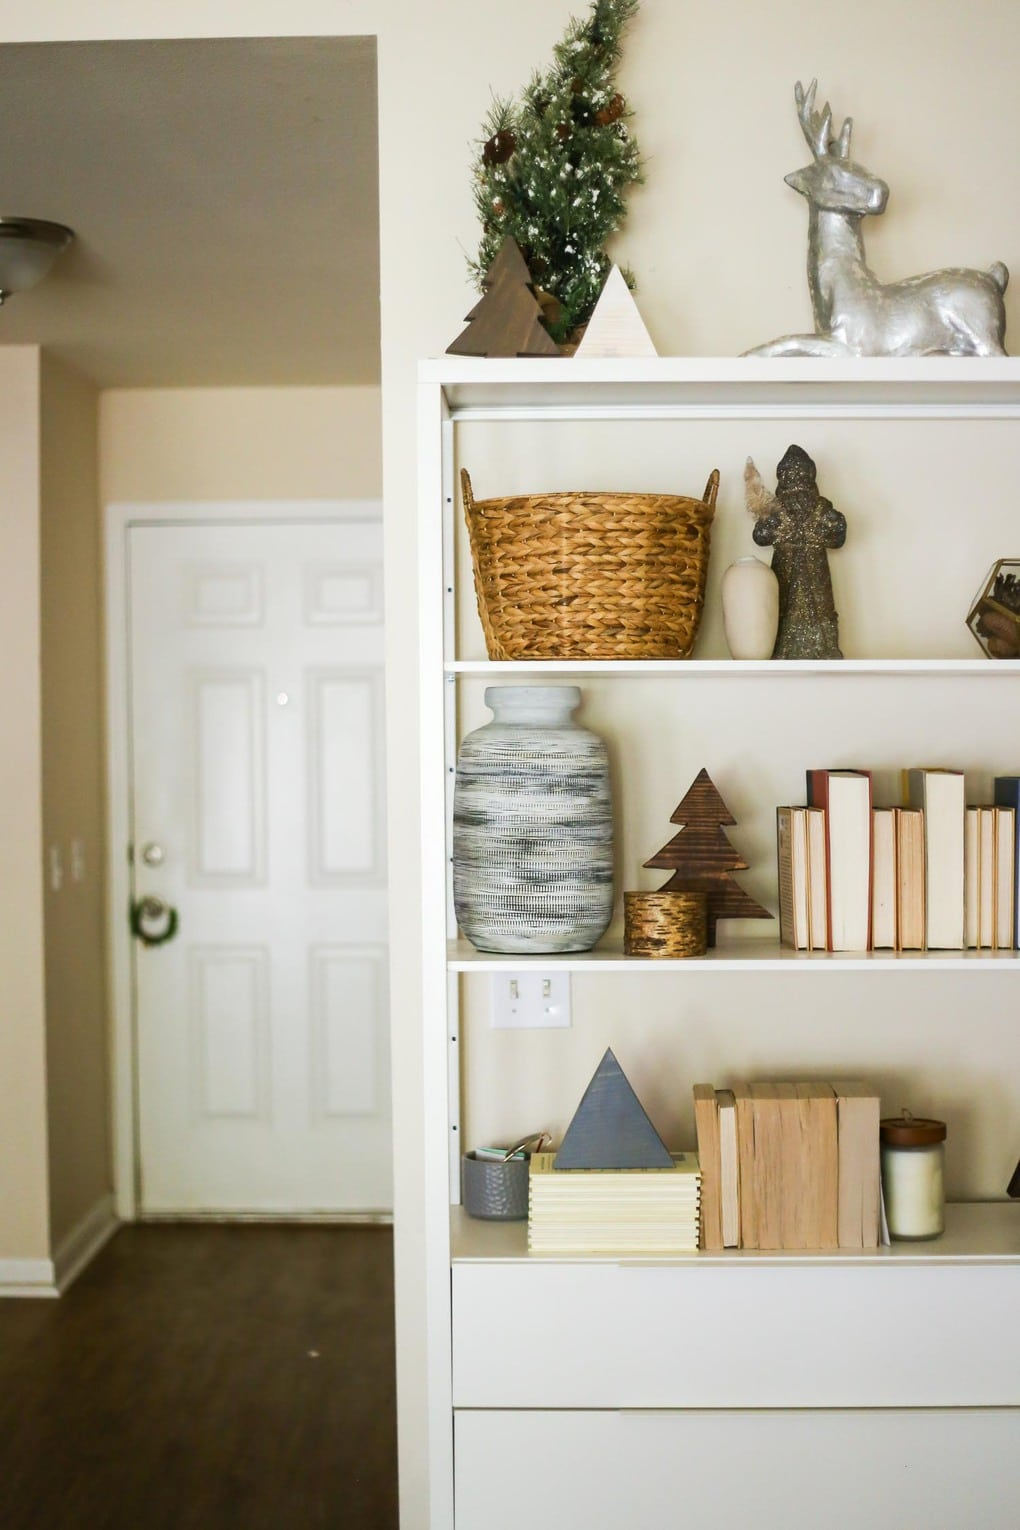 What to buy to make a new house feel like home